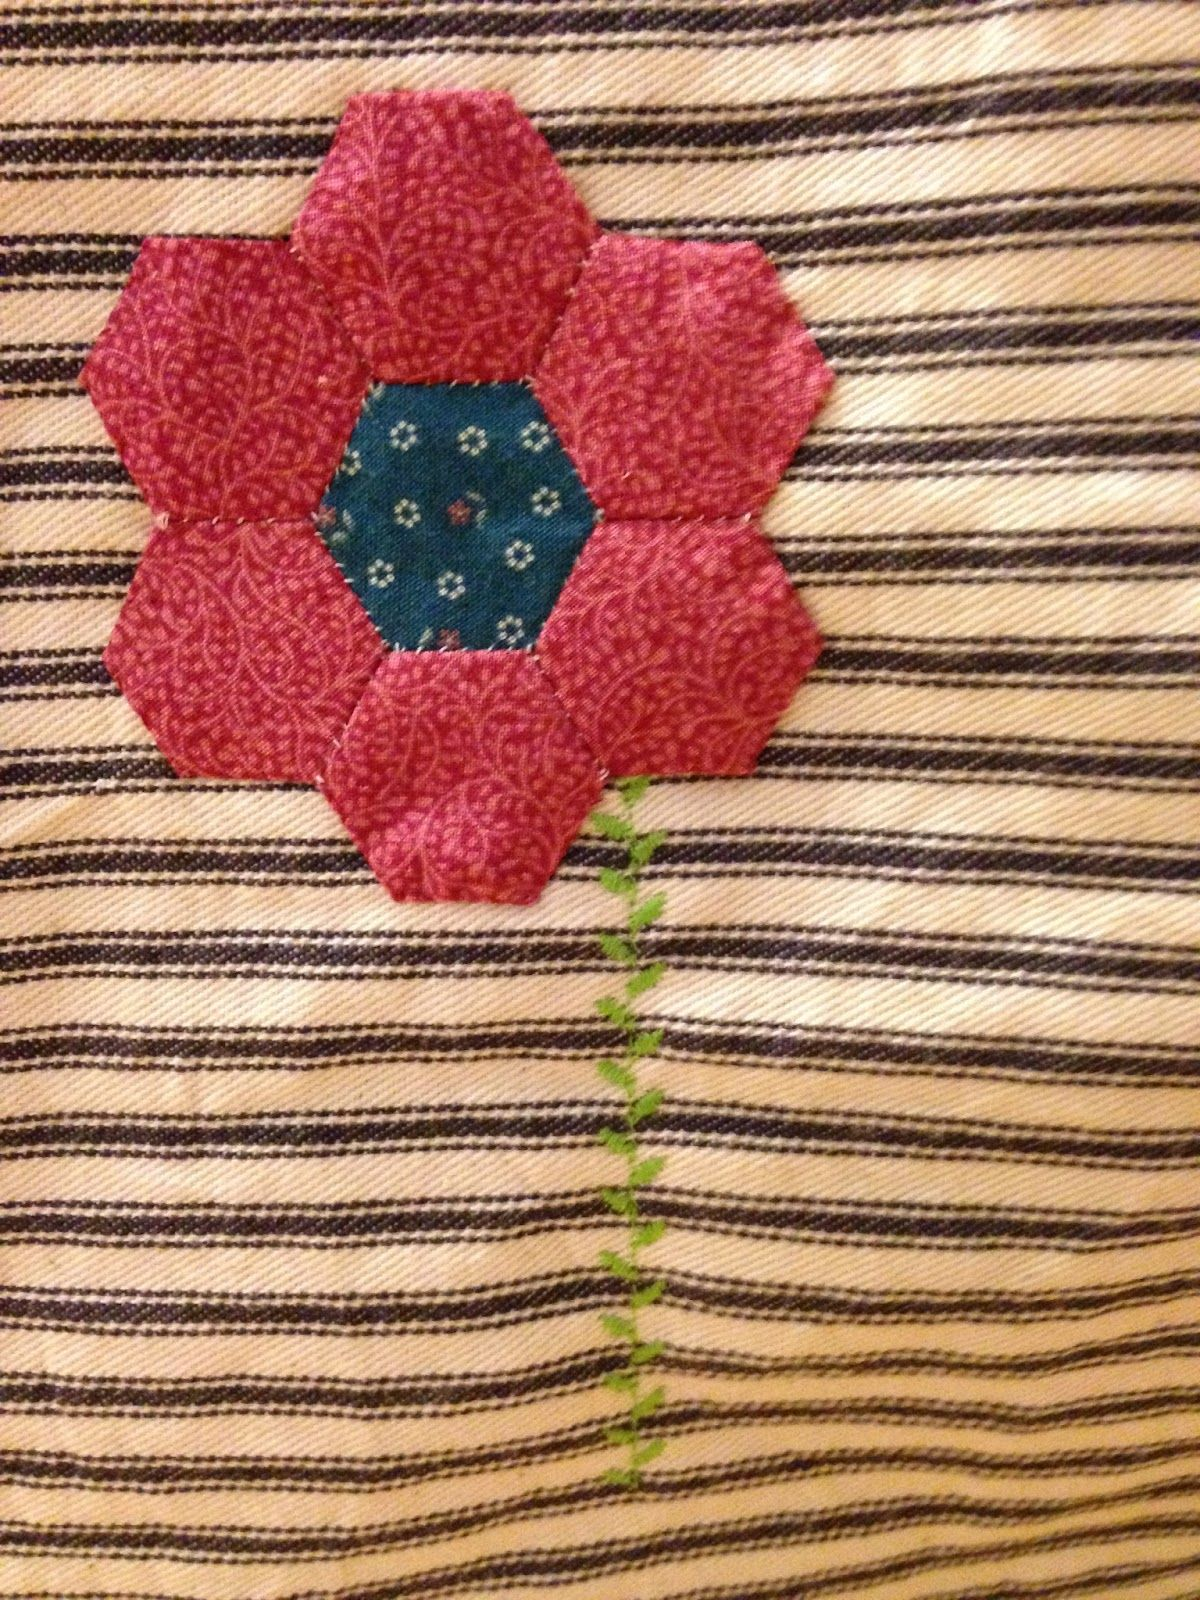 Grandmothers Garden Hexagon is used on the side of a fabric Table